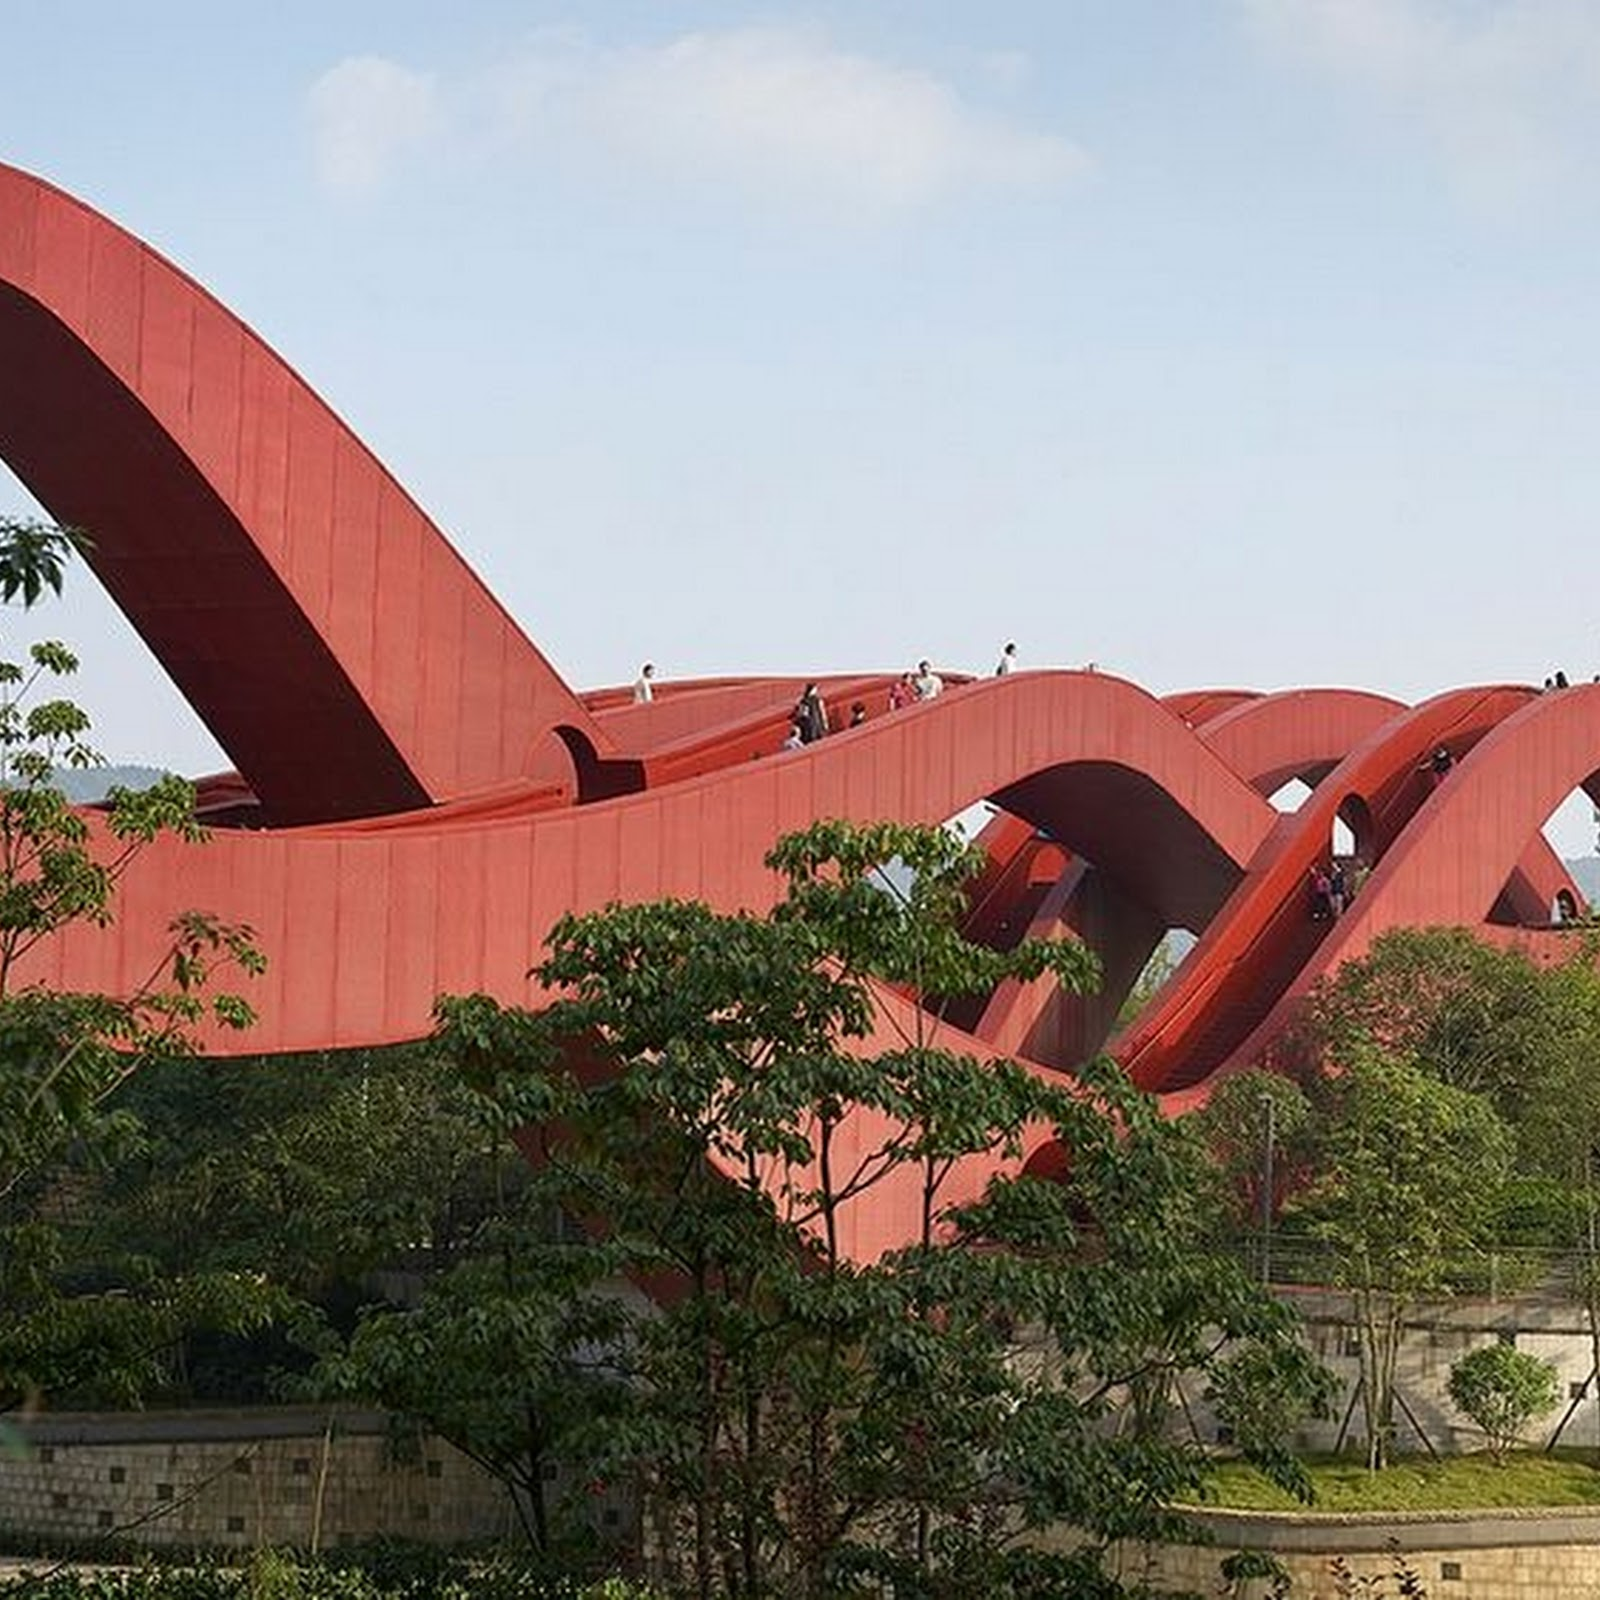 Lucky Knot Bridge in Changsha, China